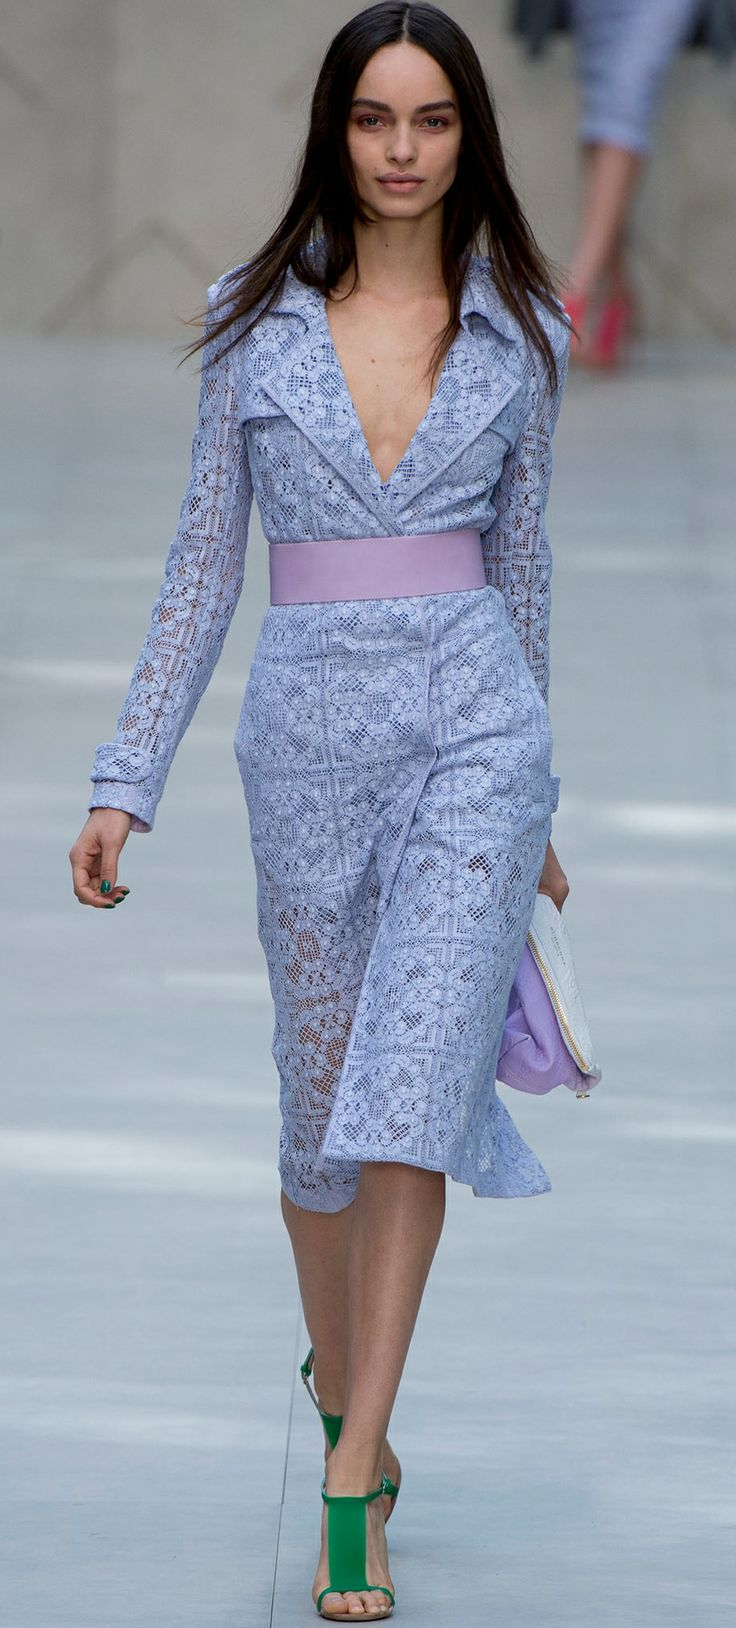 Burberry Prosum 2014. Shirtdress is trending this year.